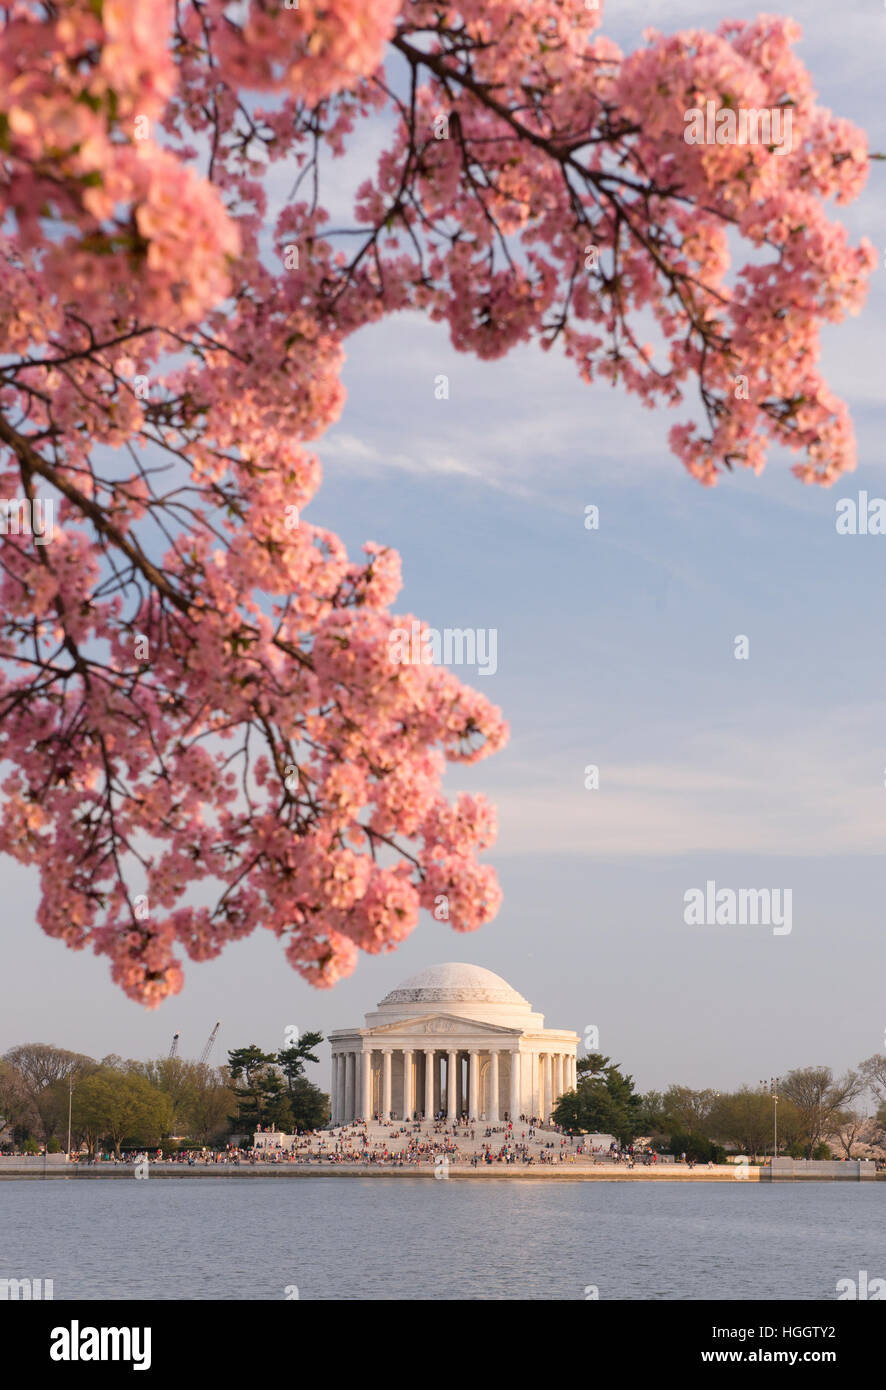 The Thomas Jefferson Memorial is framed by pink cherry blossoms at sunset. - Stock Image